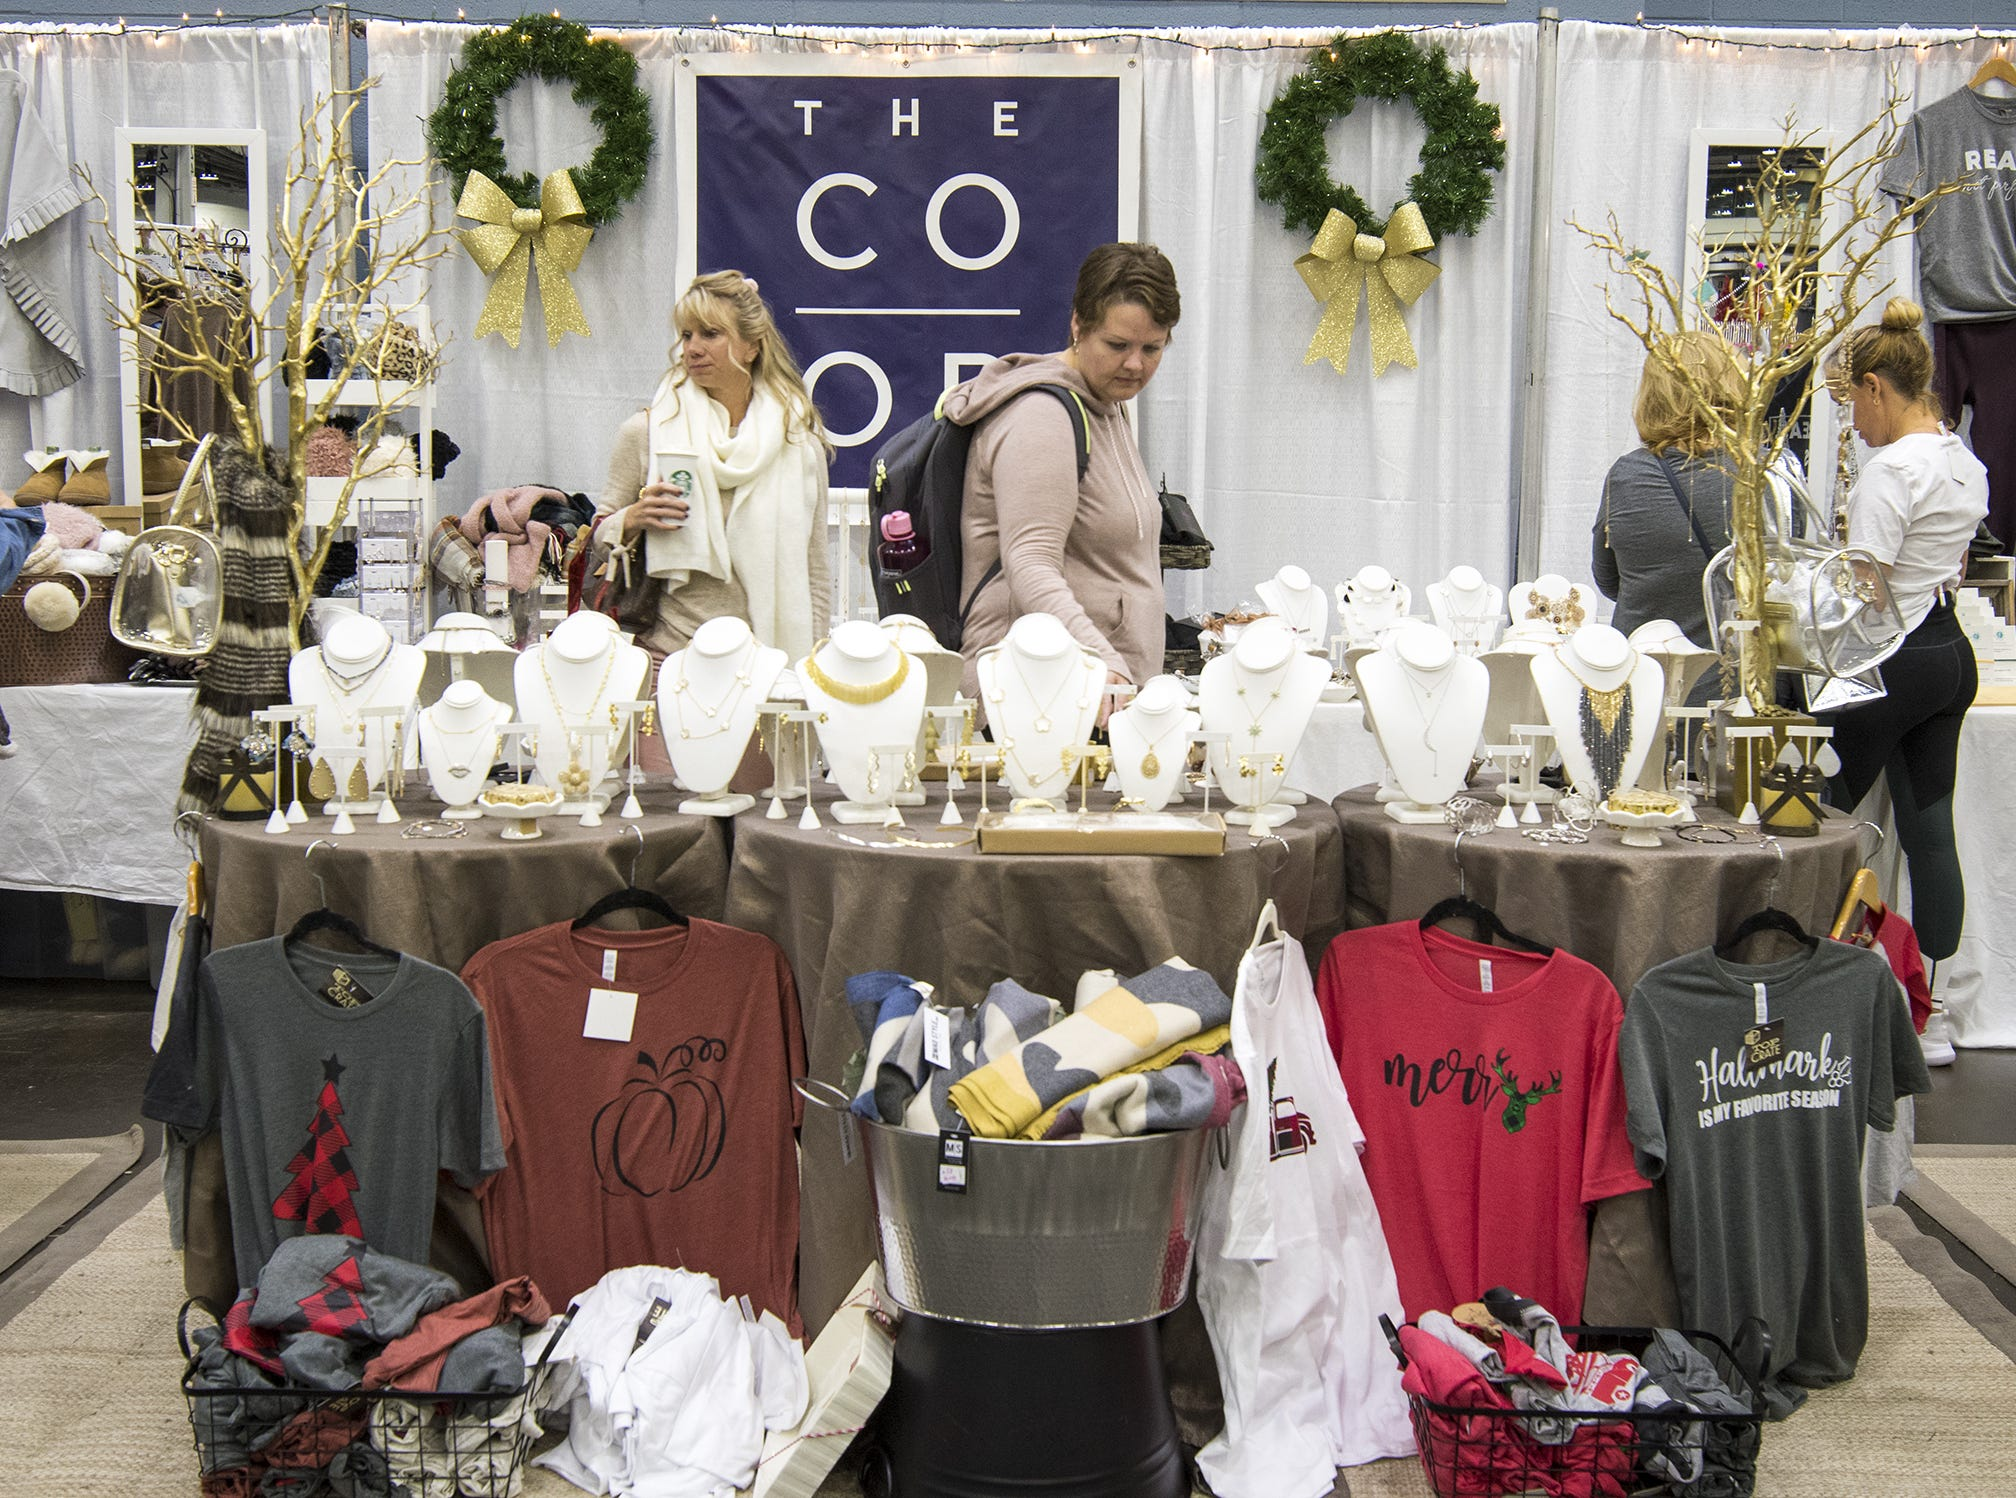 The Co-op draws the attention of many shoppers during the Greater Cincinnati Holiday Market at the Duke Energy Center Friday, November 2, 2018 in Cincinnati, Ohio.